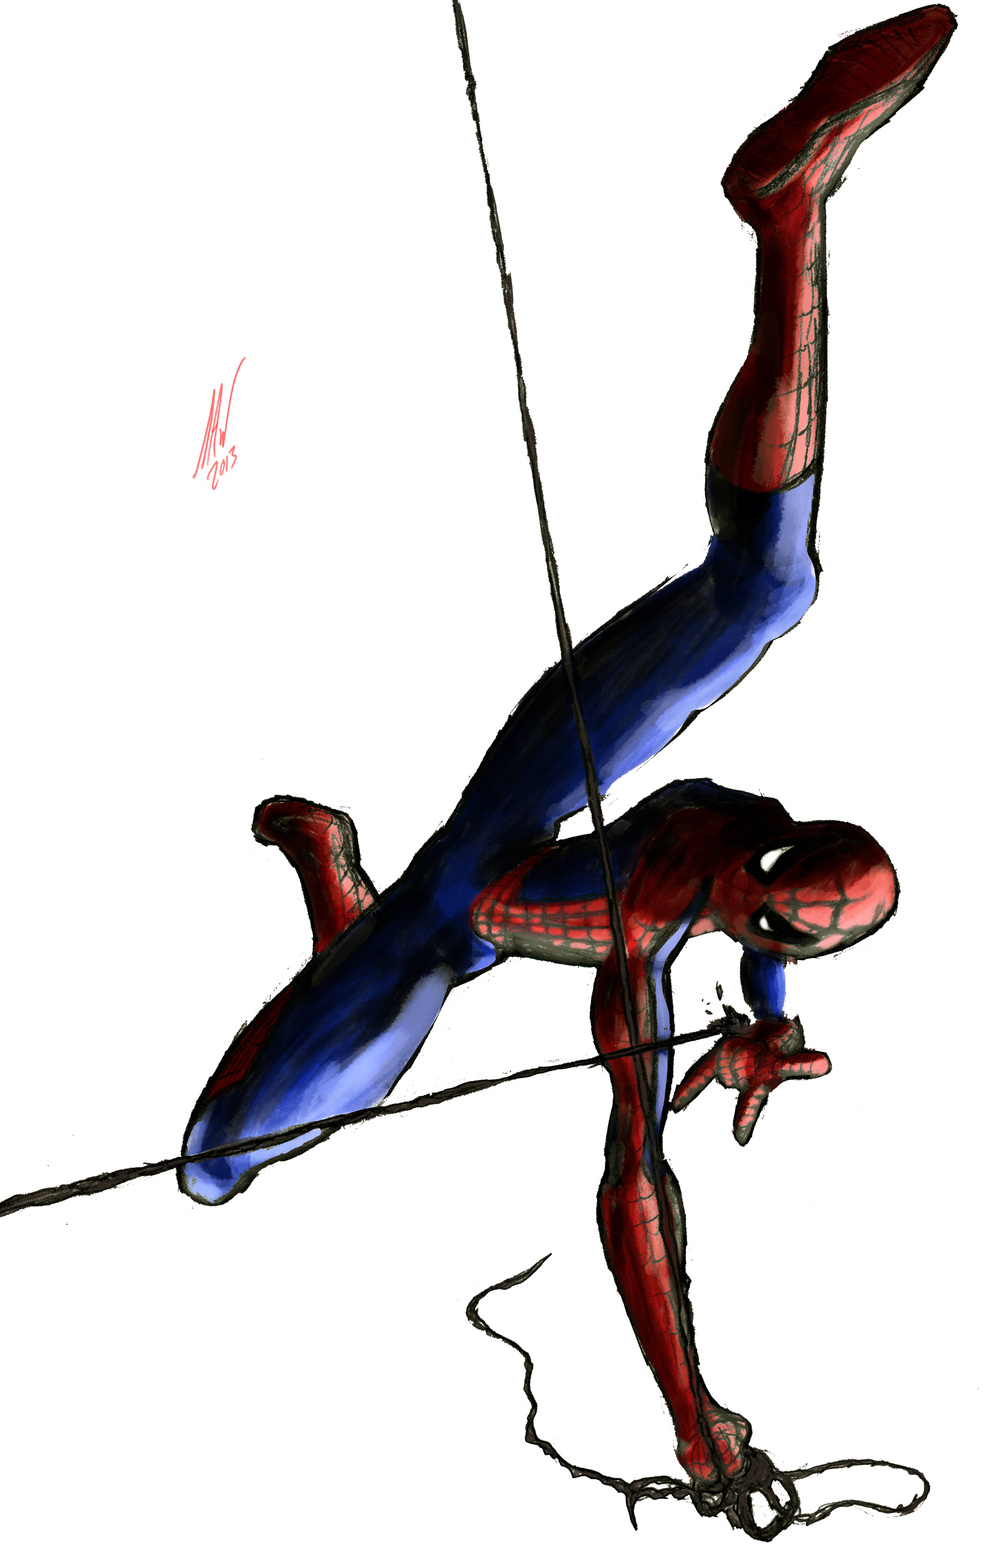 Spiderman-Thwipt 11x17.jpg